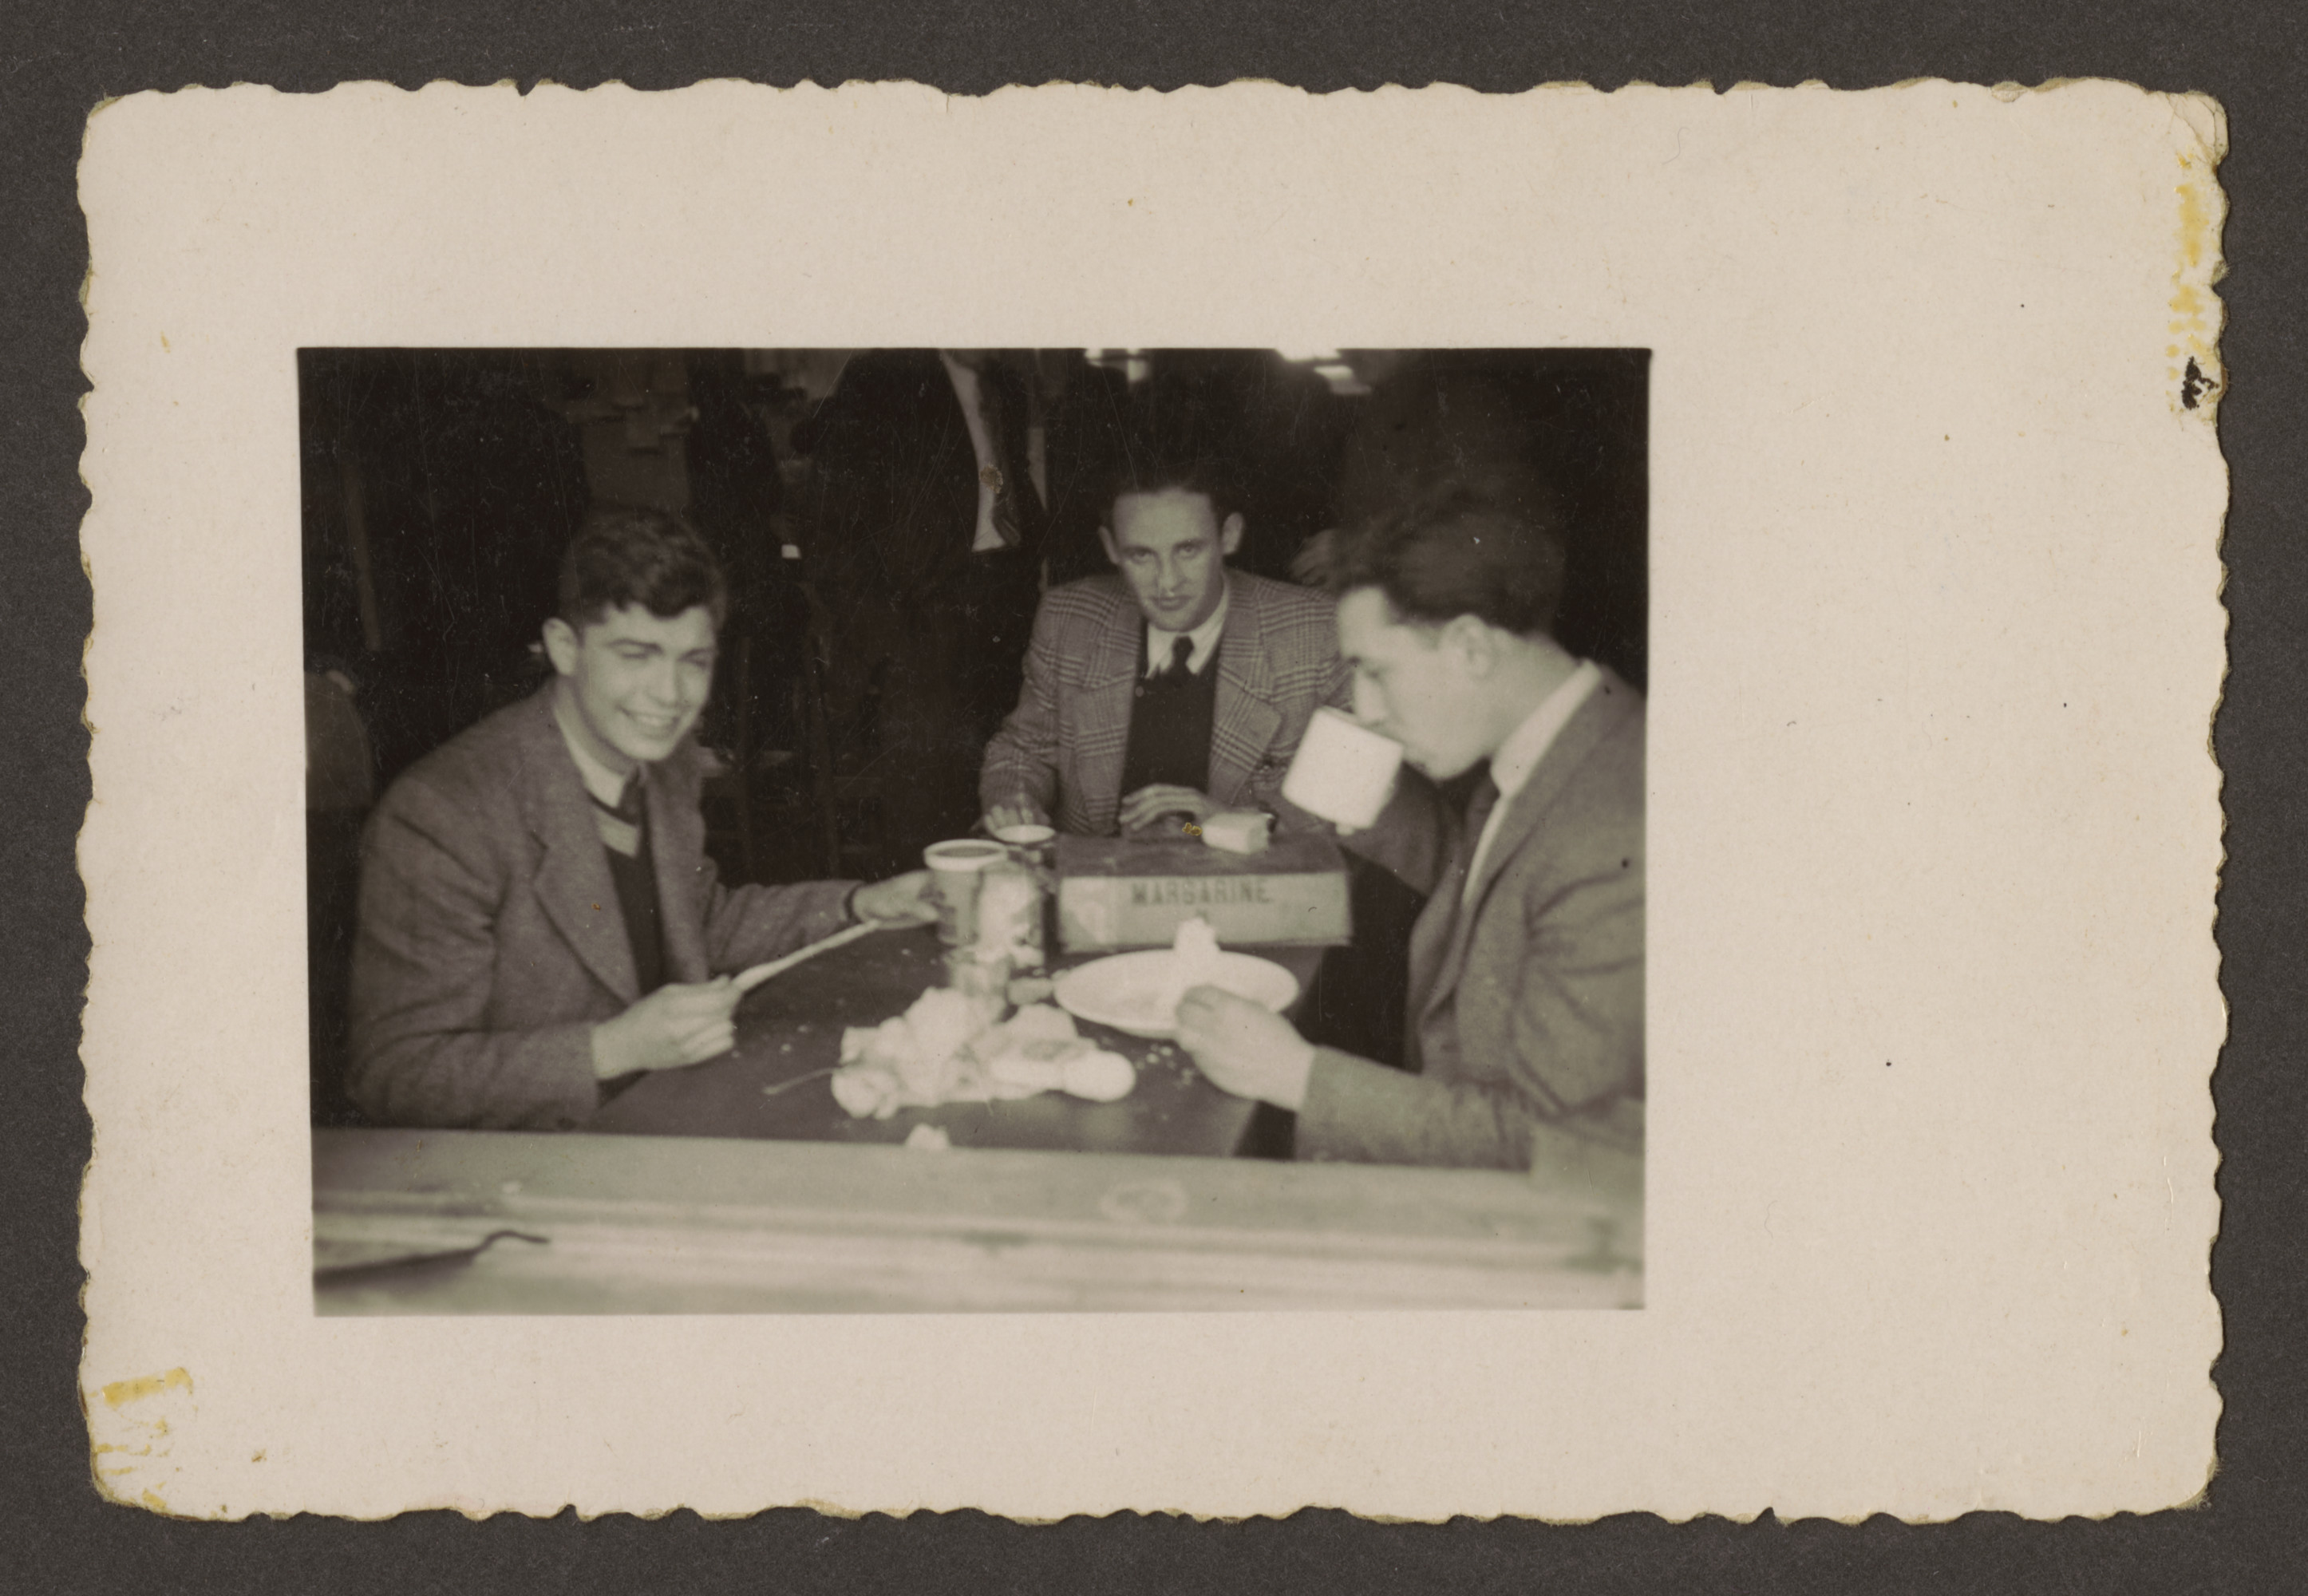 A group of friends meets for a cup of coffee in the Westerbork transit camp.  Among those pictured are Erich Rosendahl (far right) and Werner Lederman (far left).